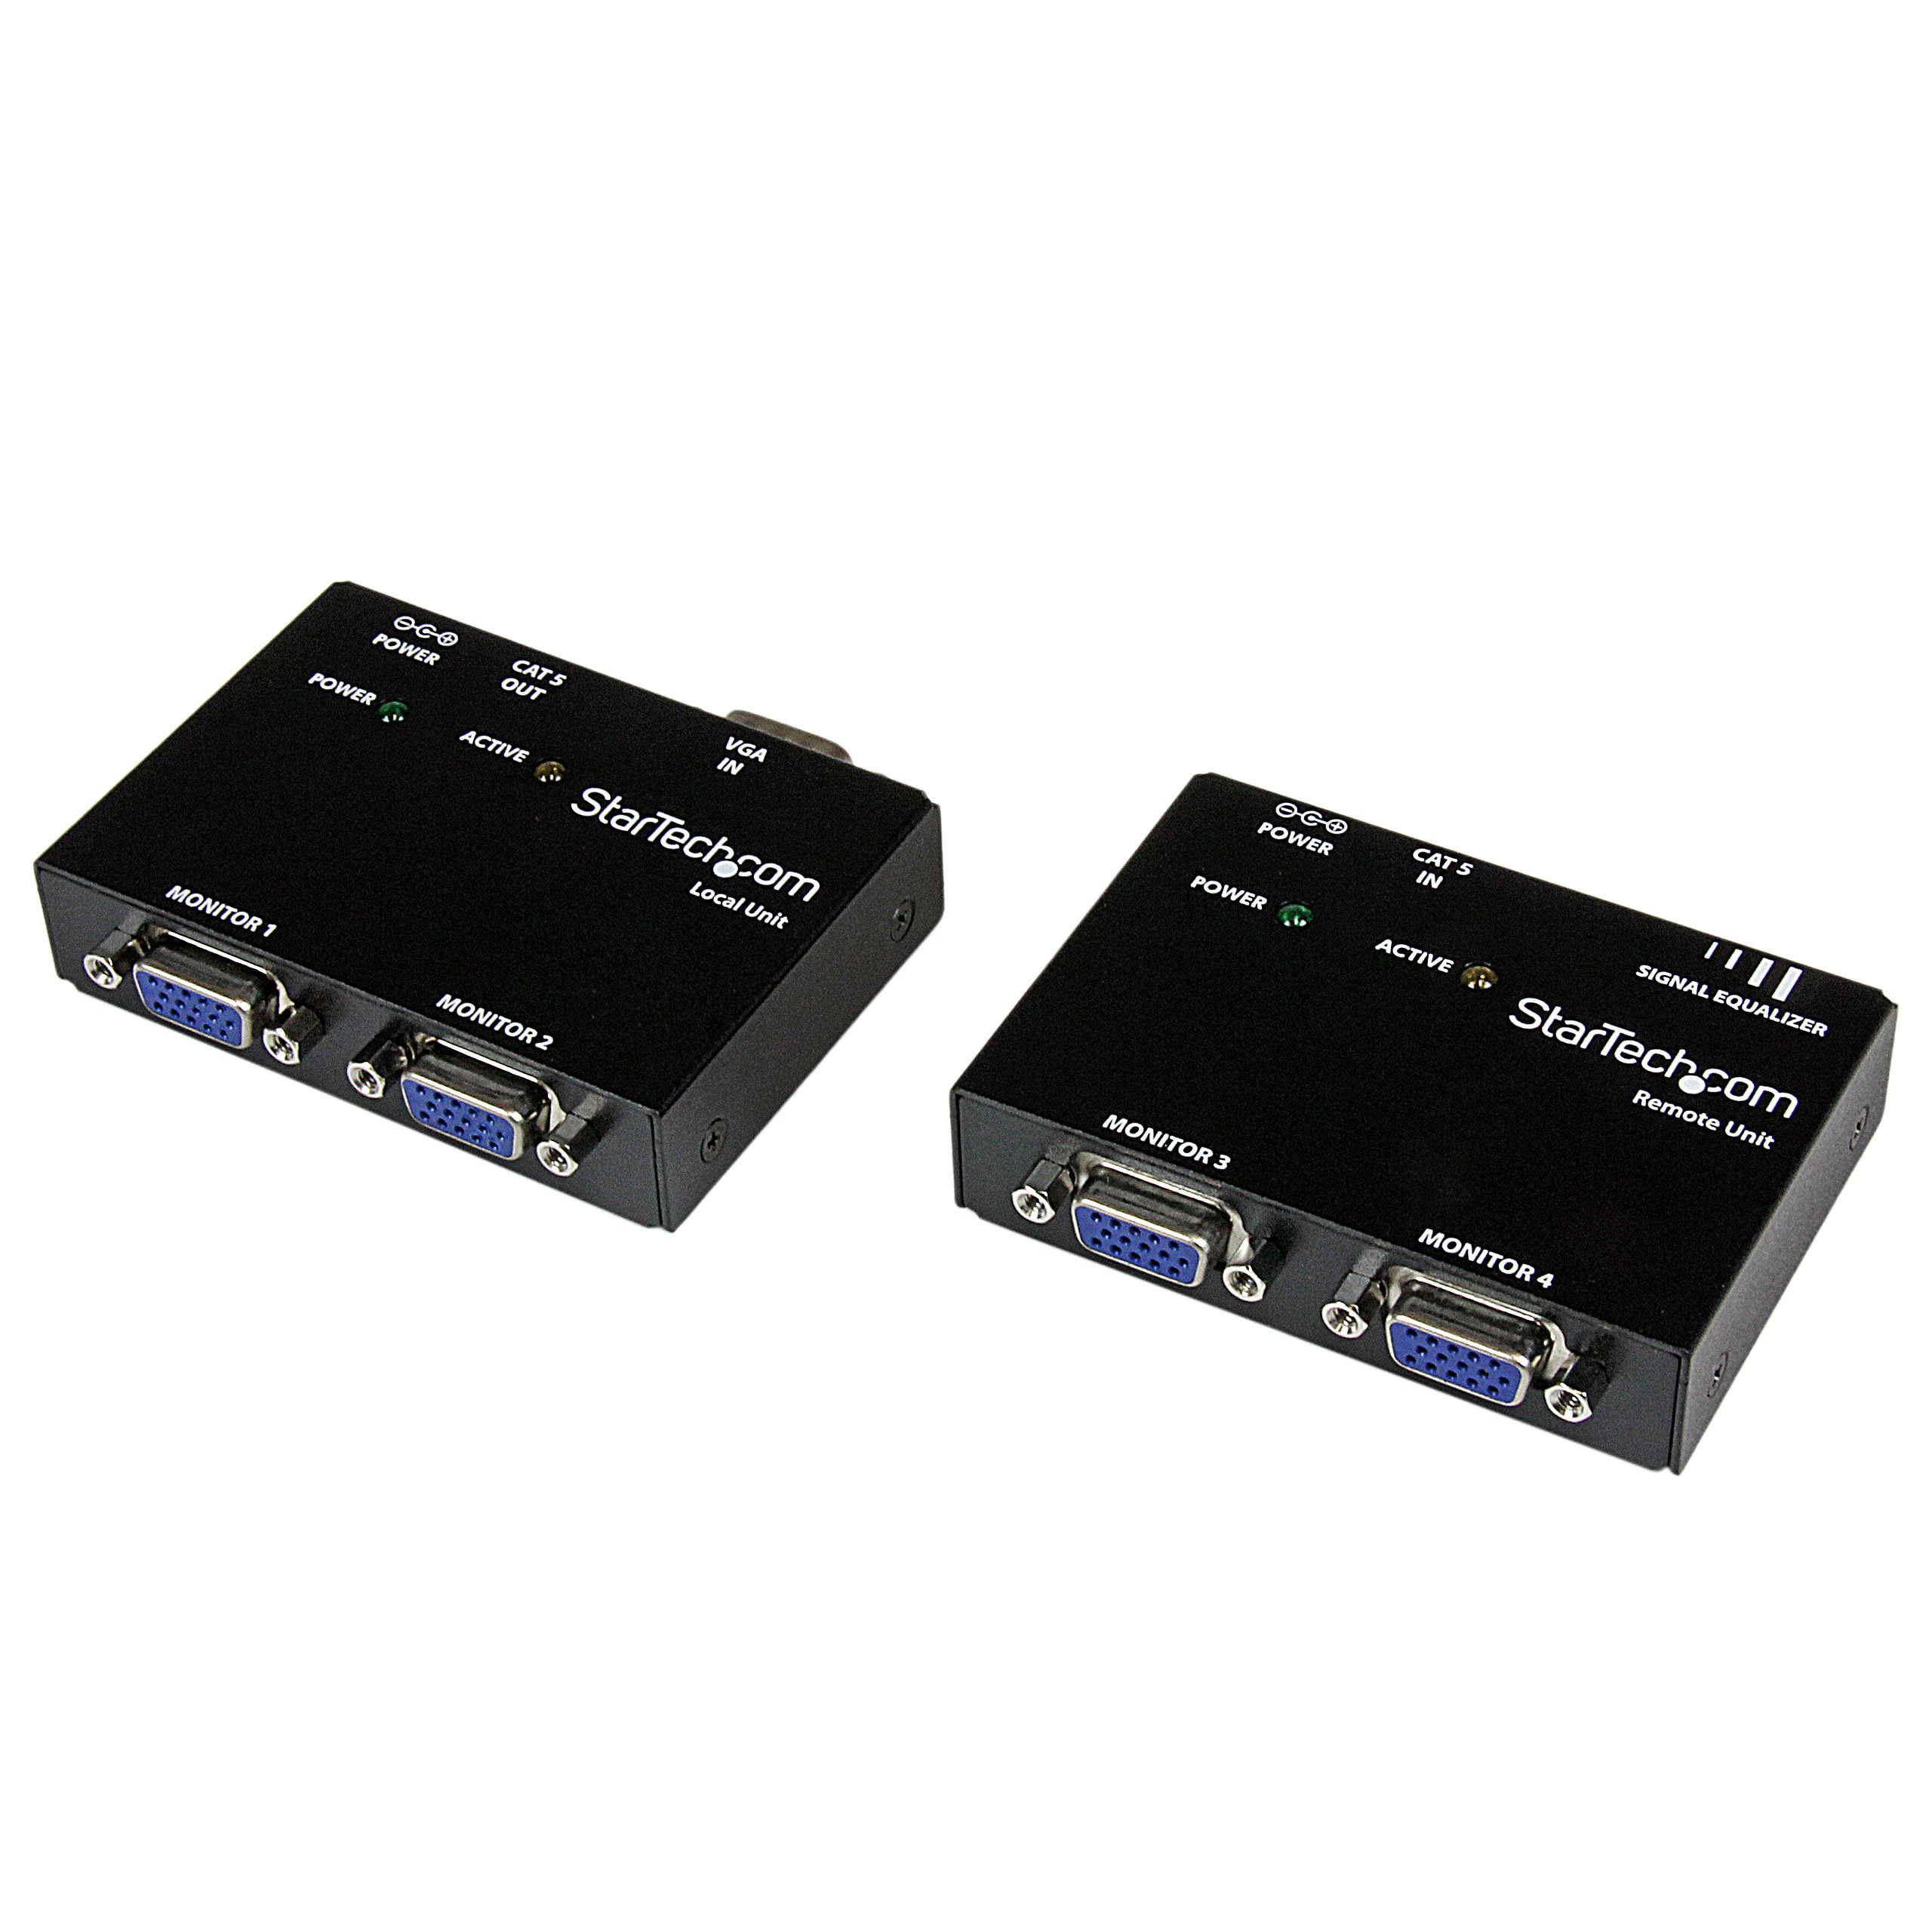 StarTech.com VGA Video Extender over Cat5 ST121 Series - Up to 500 feet - 150m - VGA over Cat 5 Extender - 2 Local and 2 Remote